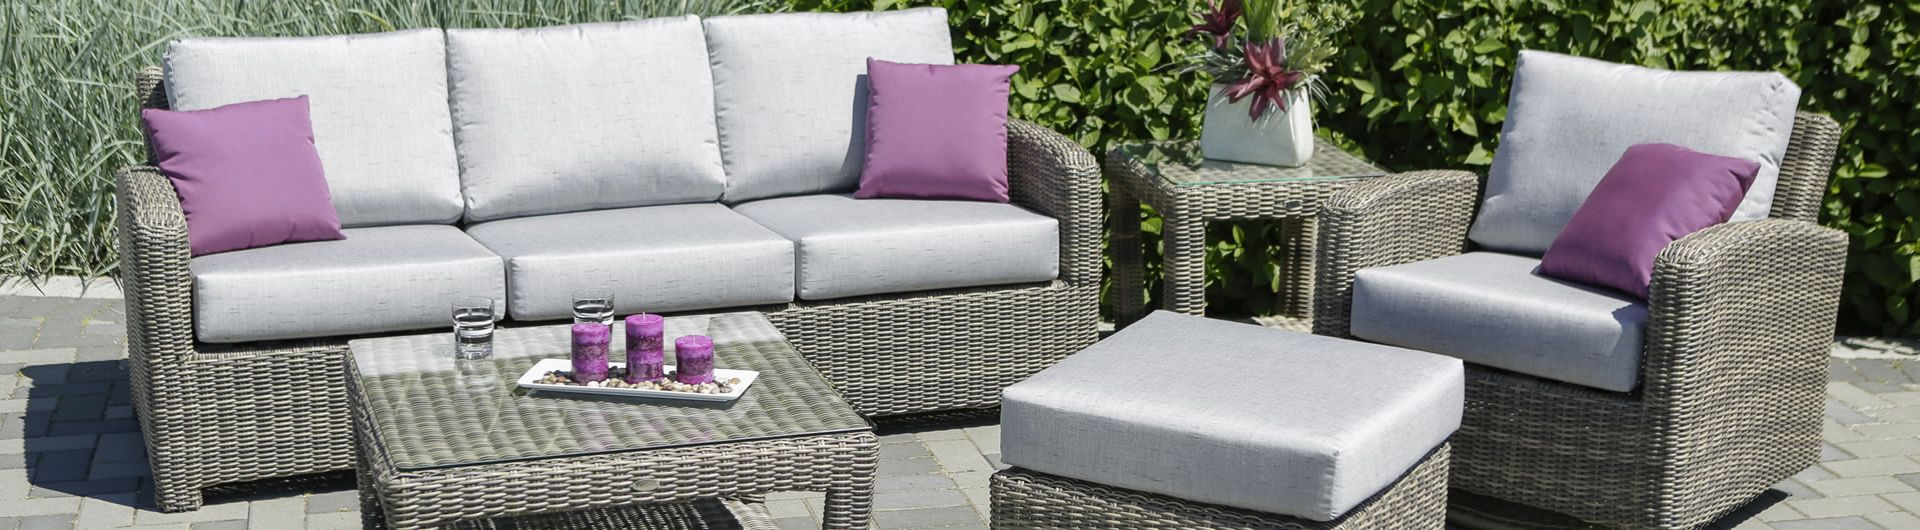 Princeville Lounging Collection